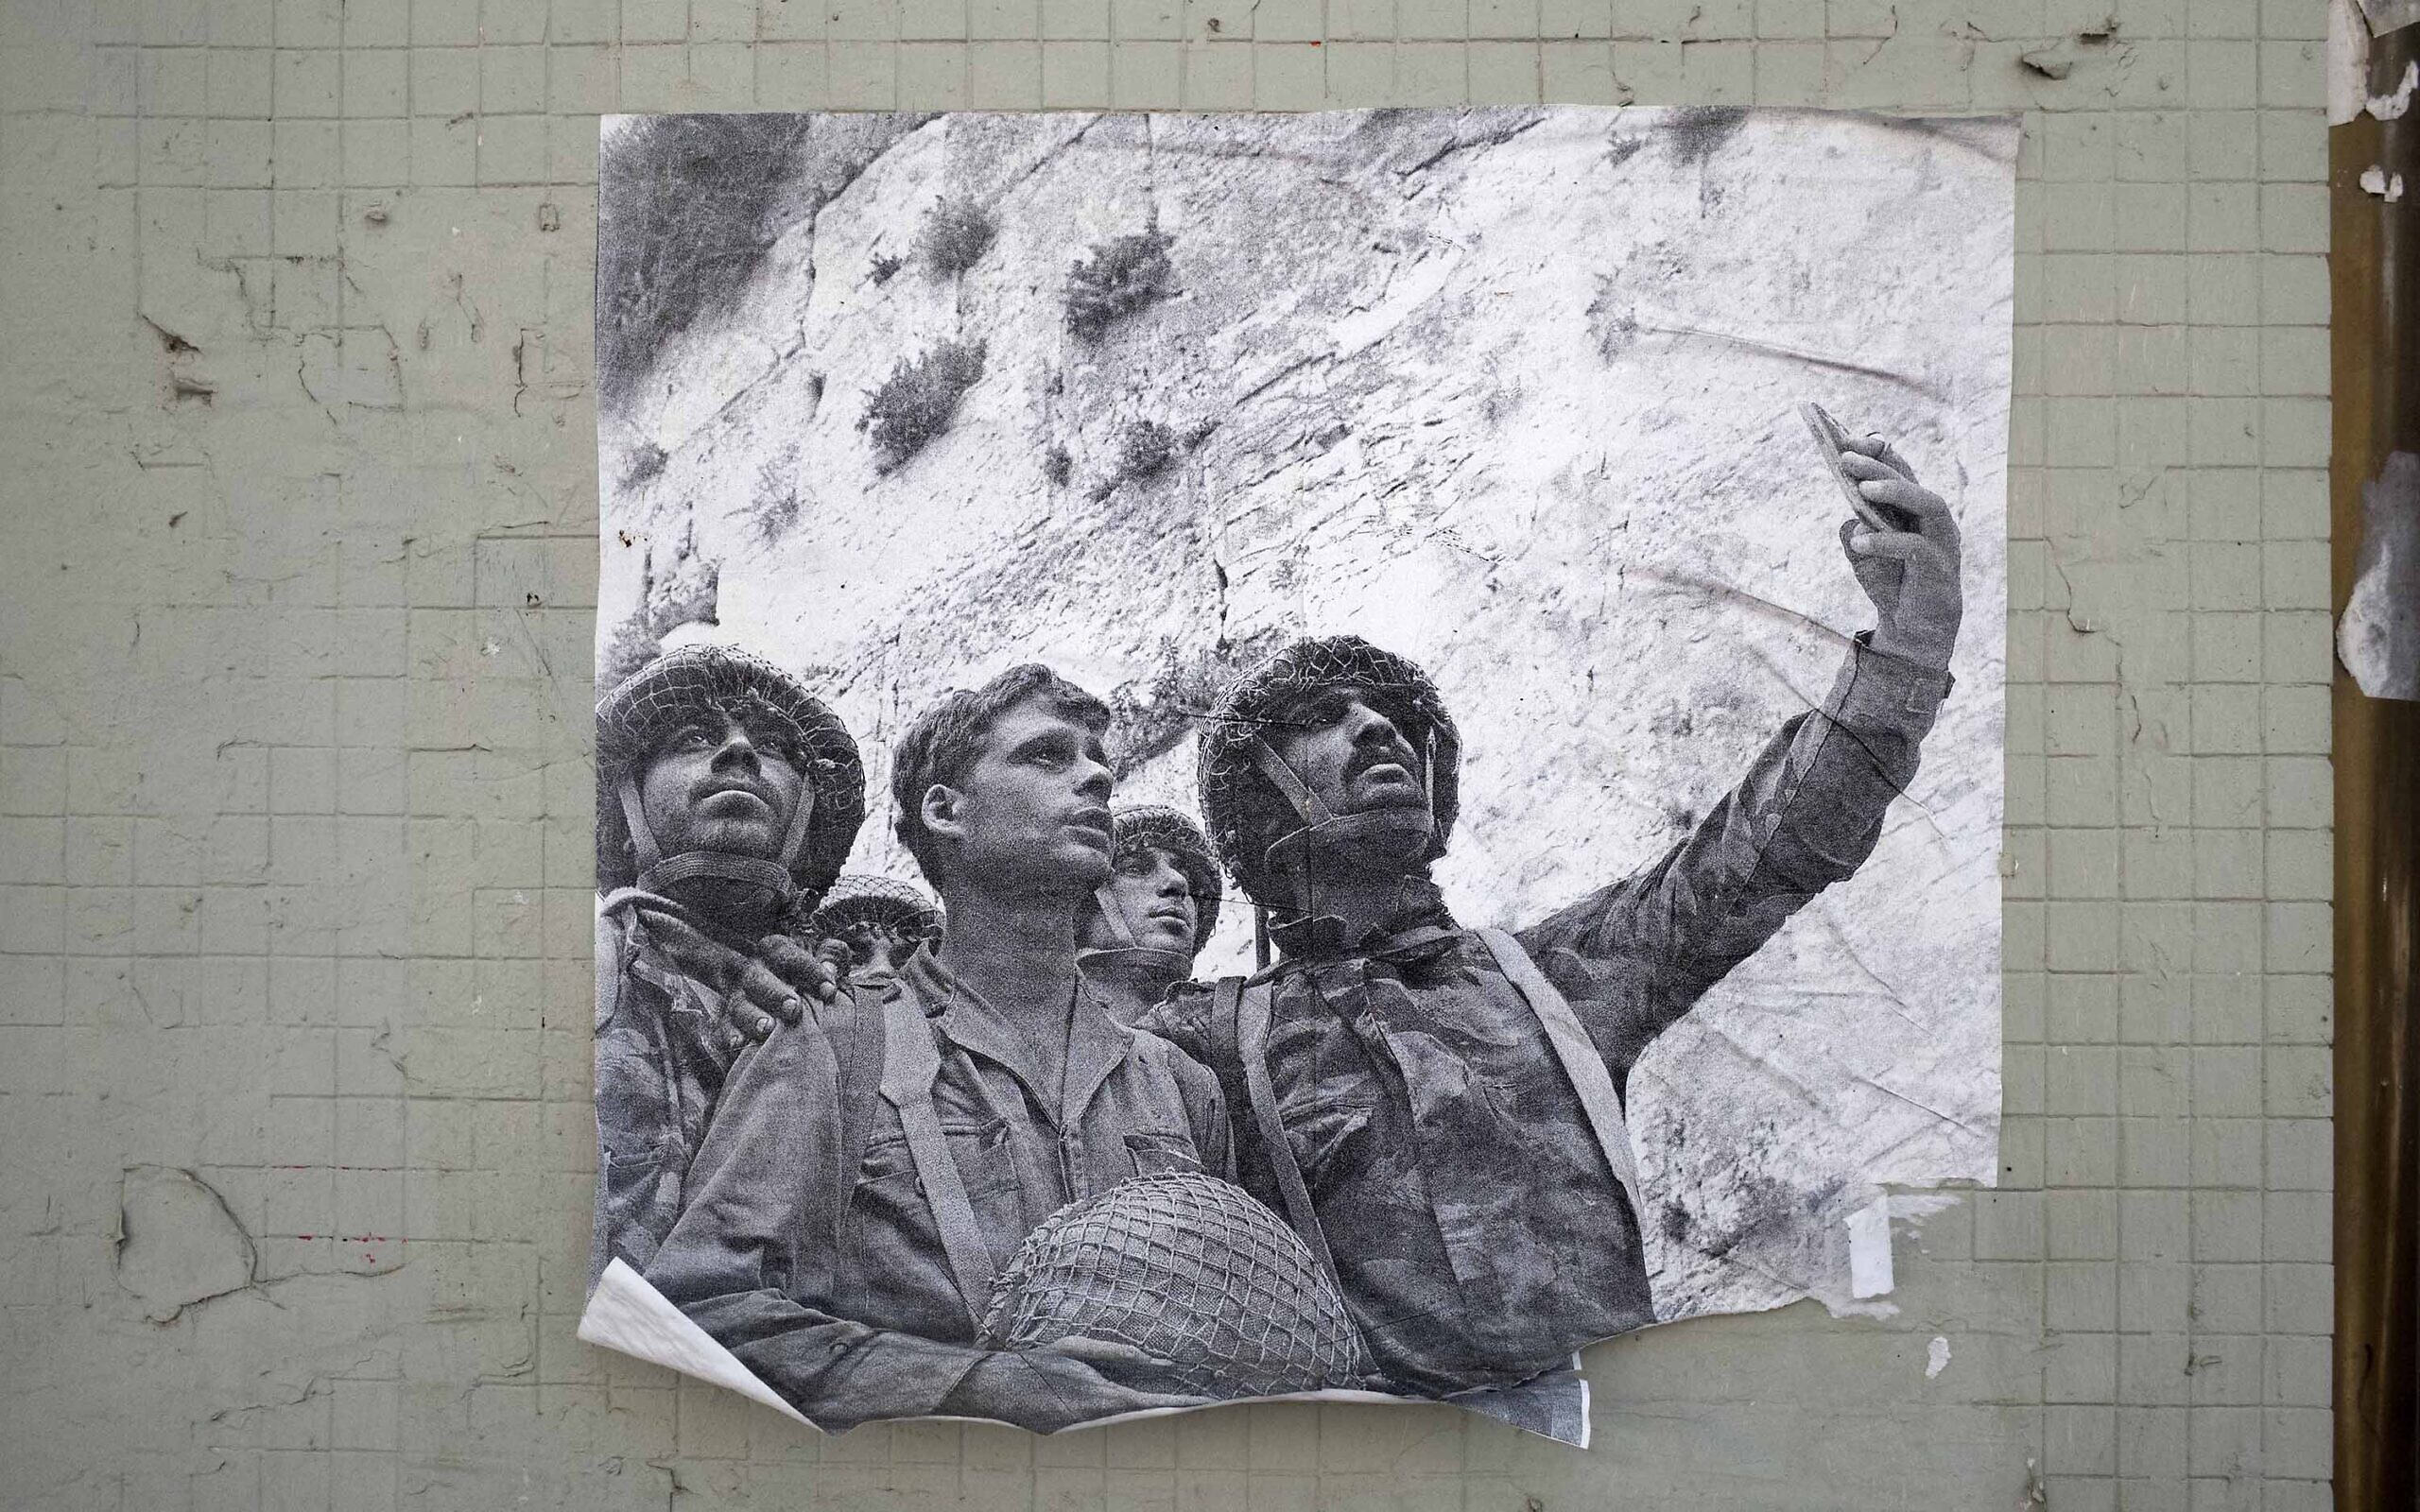 A paste-up of an altered iconic 1967 photo by David Rubinger. (Lord K2)